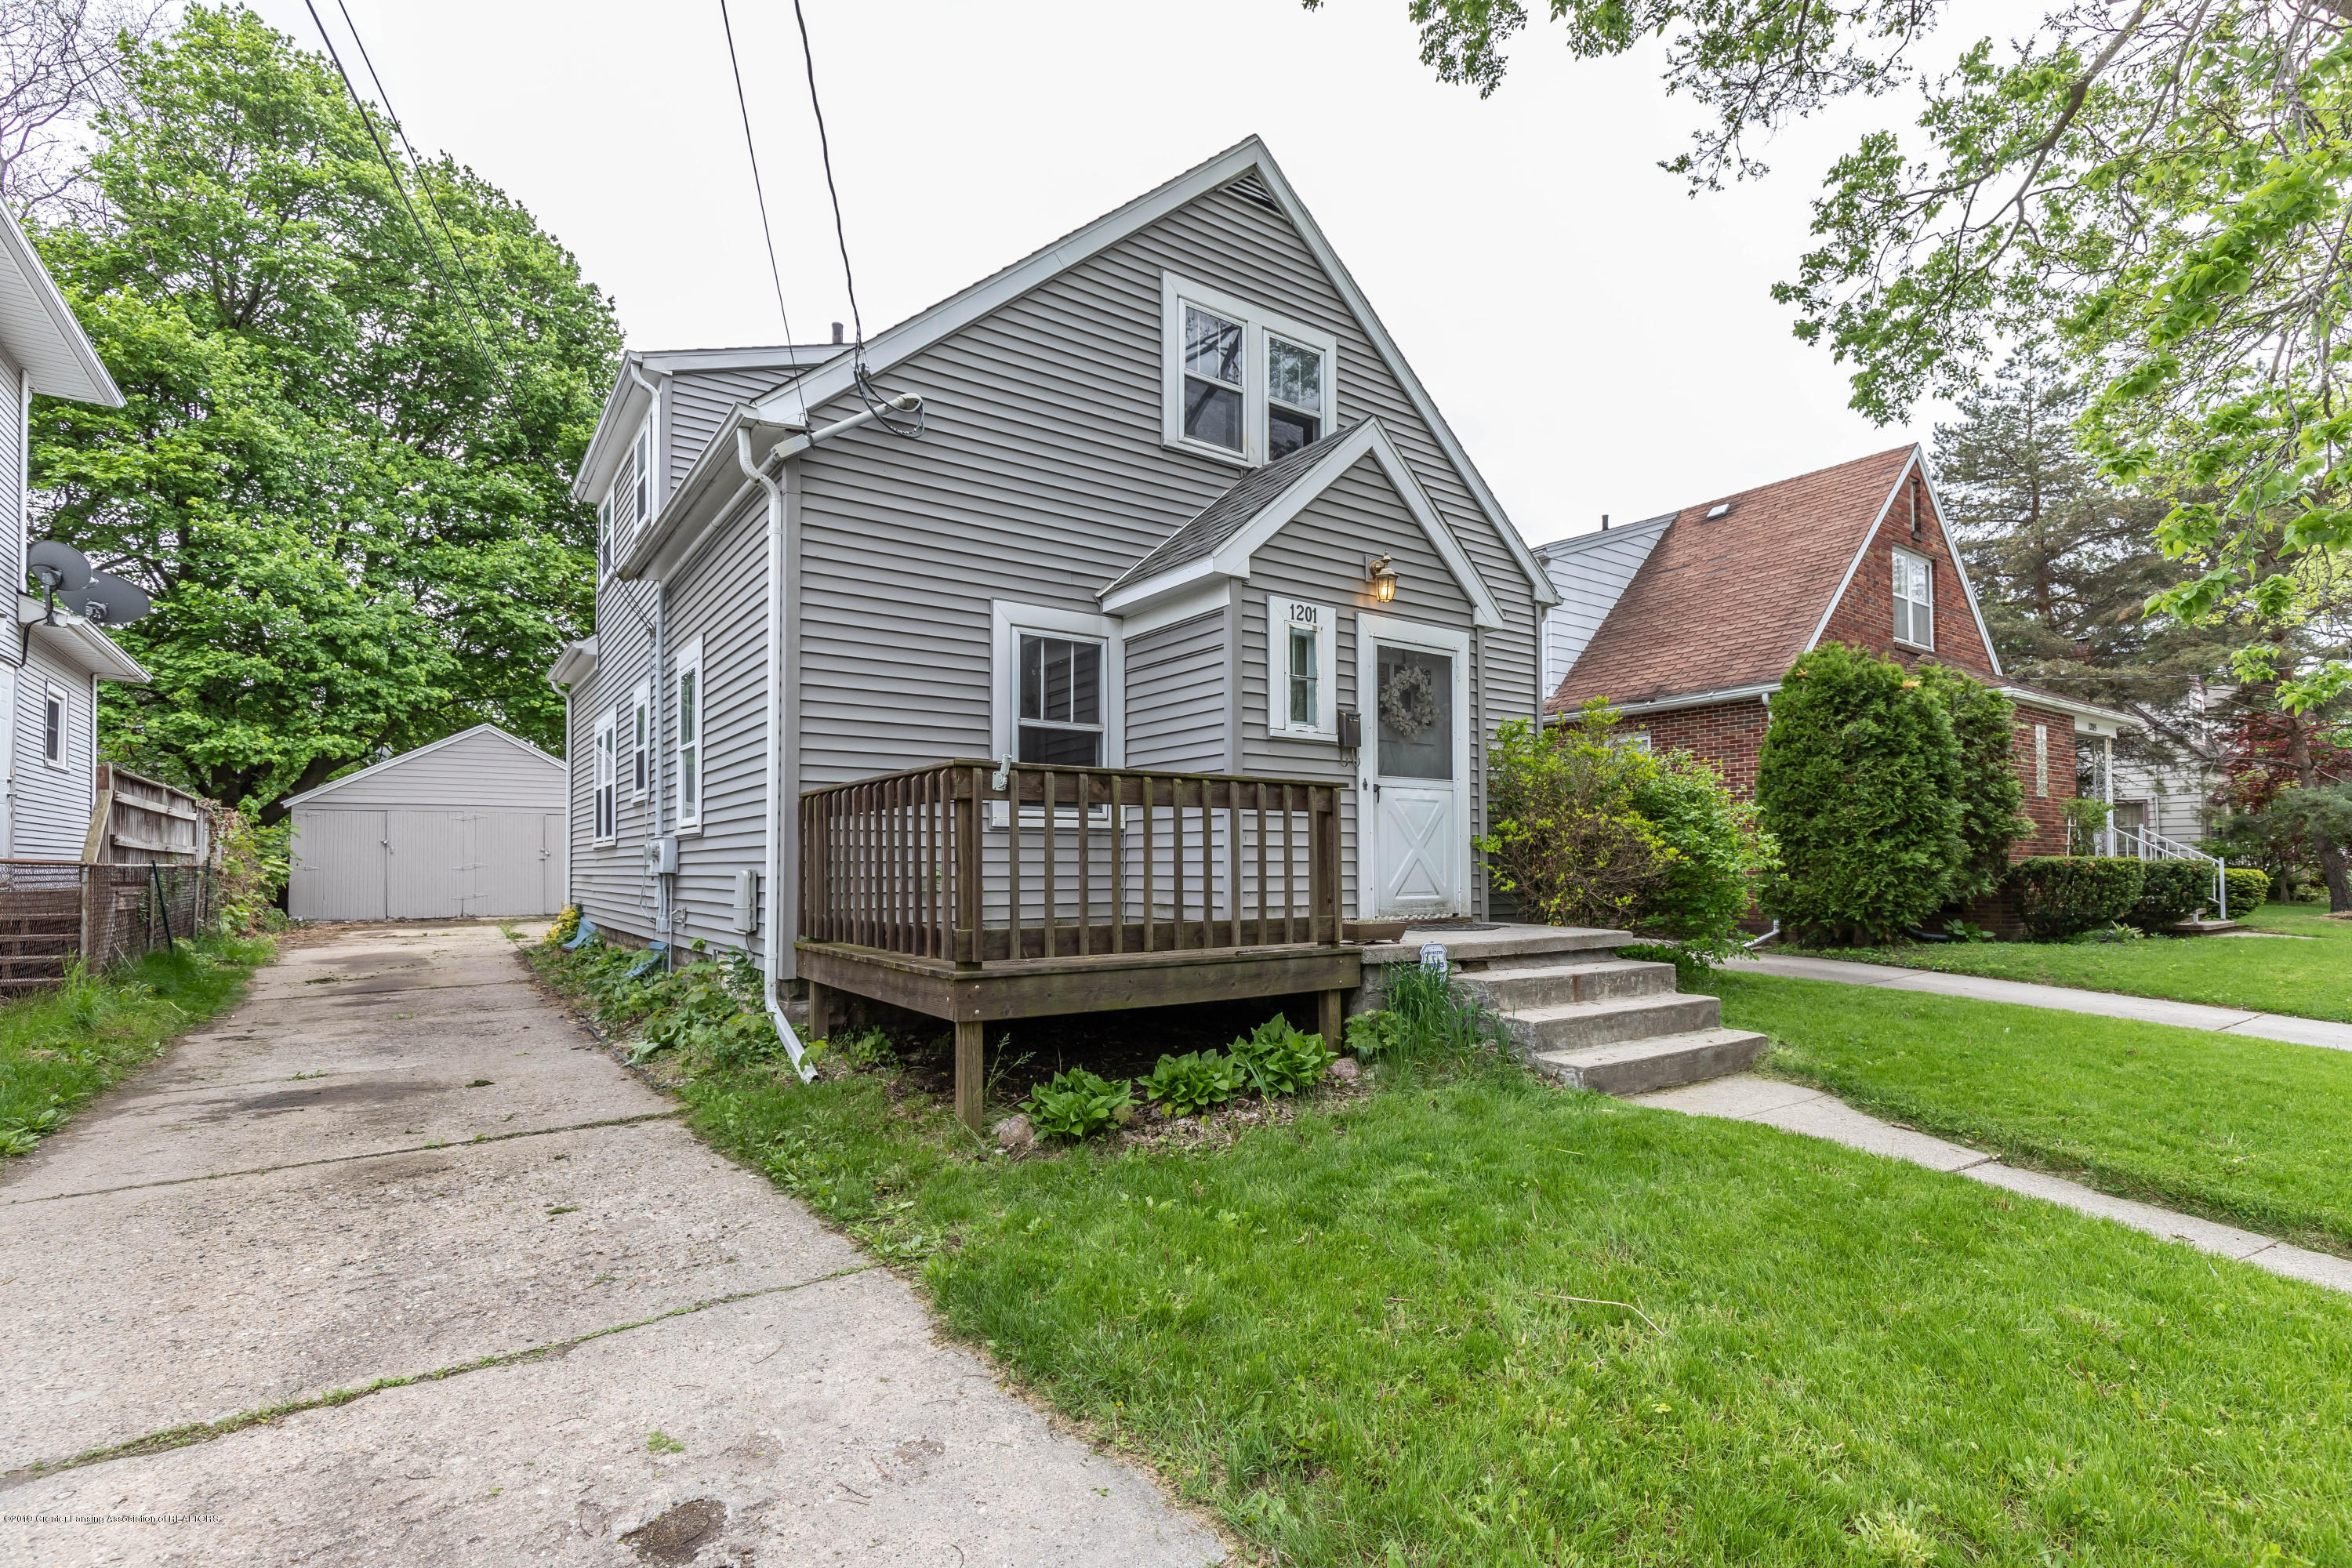 1201 Cooper Ave - cooperfront2 (1 of 1) - 34